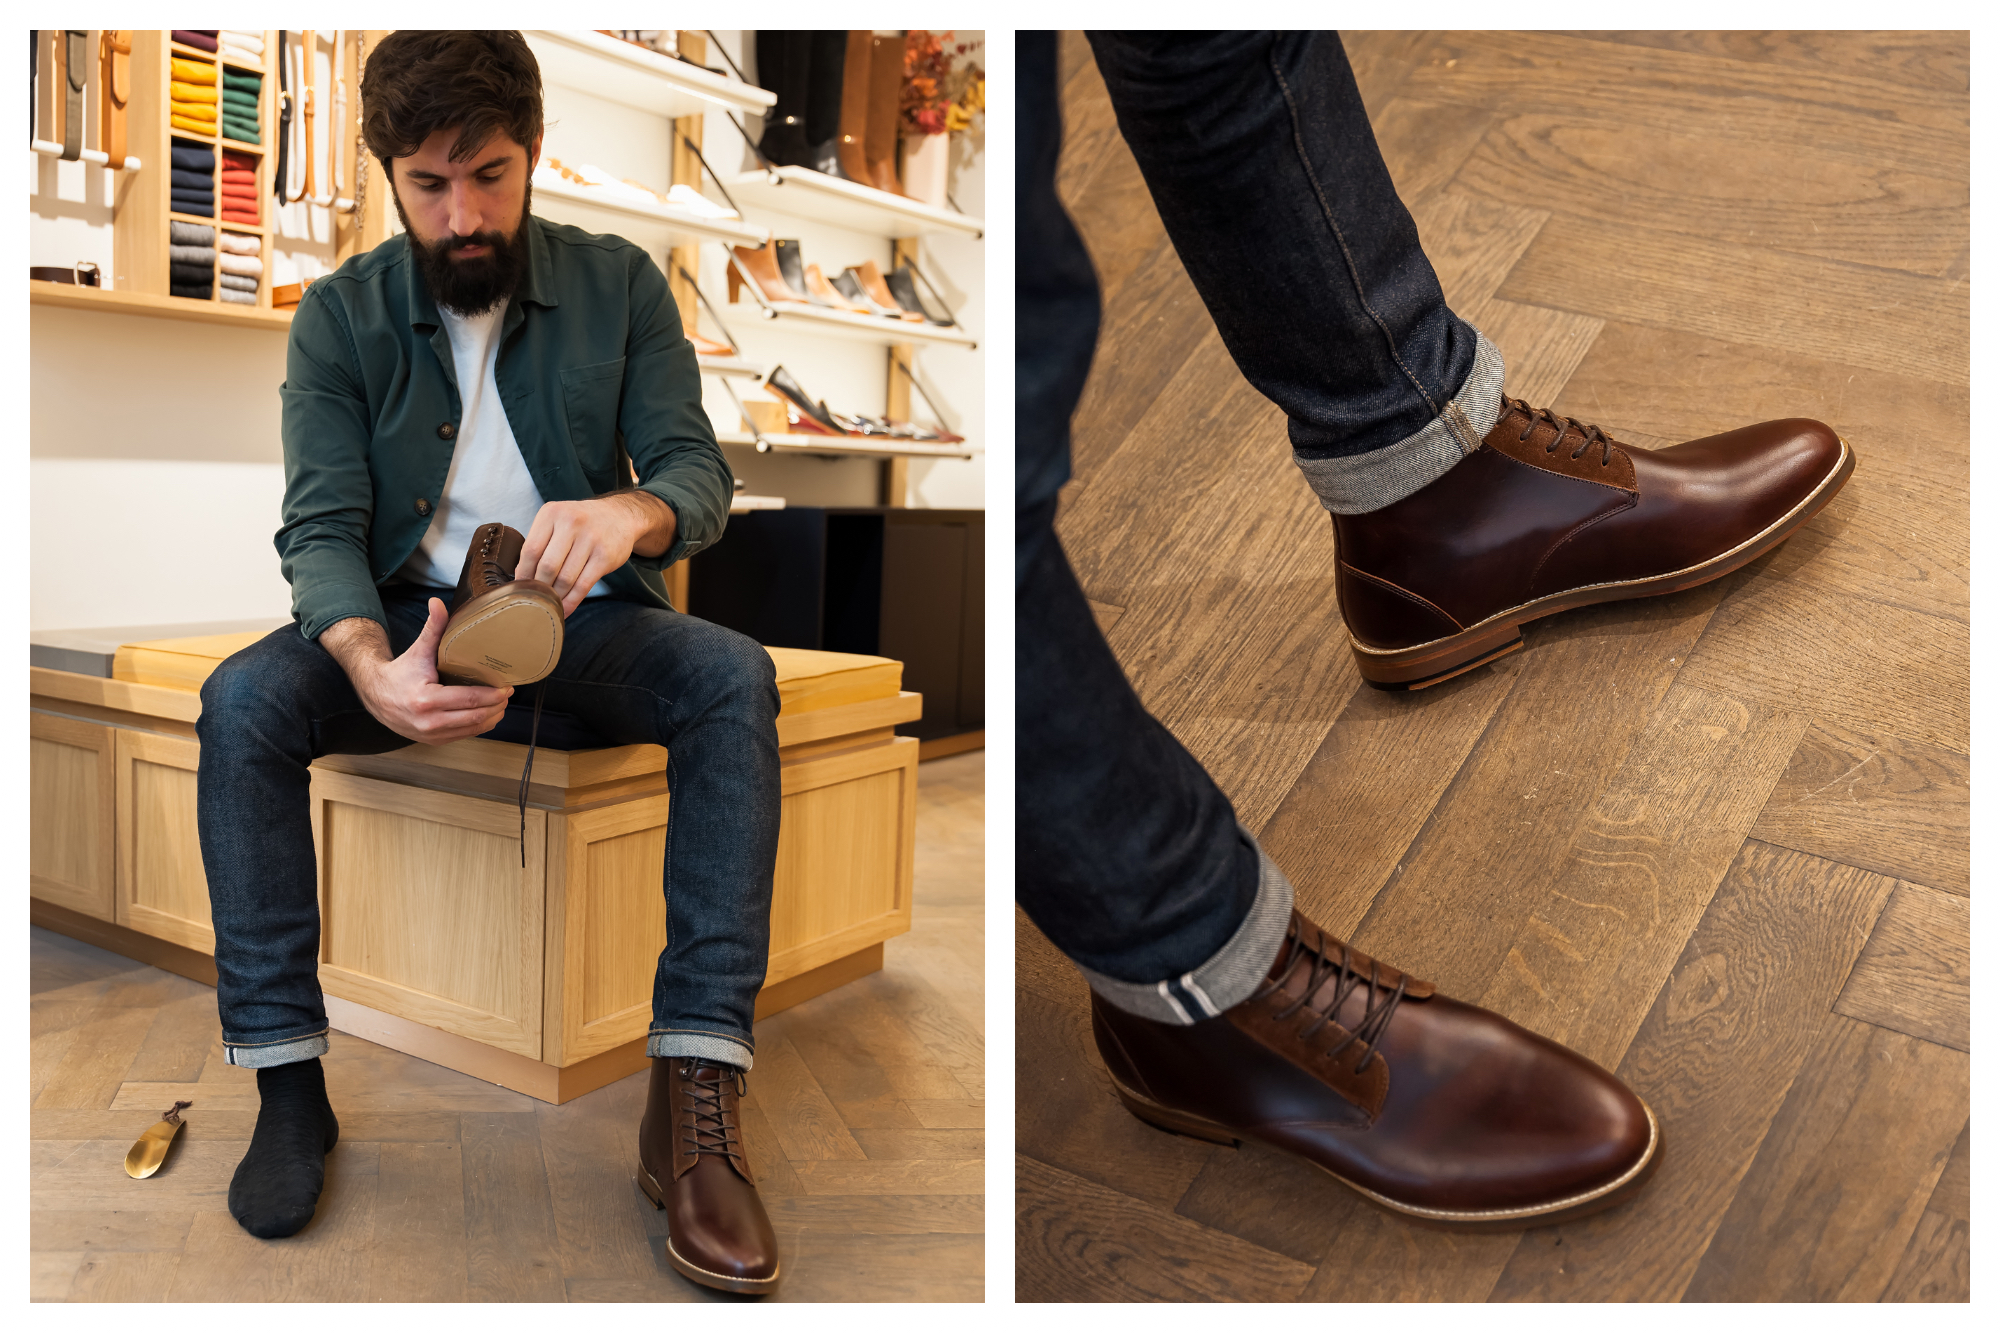 A man wearing an open green shirt trying on beautiful brown leather boots at Pied de Biche in Paris (left). A close-up of the brown leather boots (right).